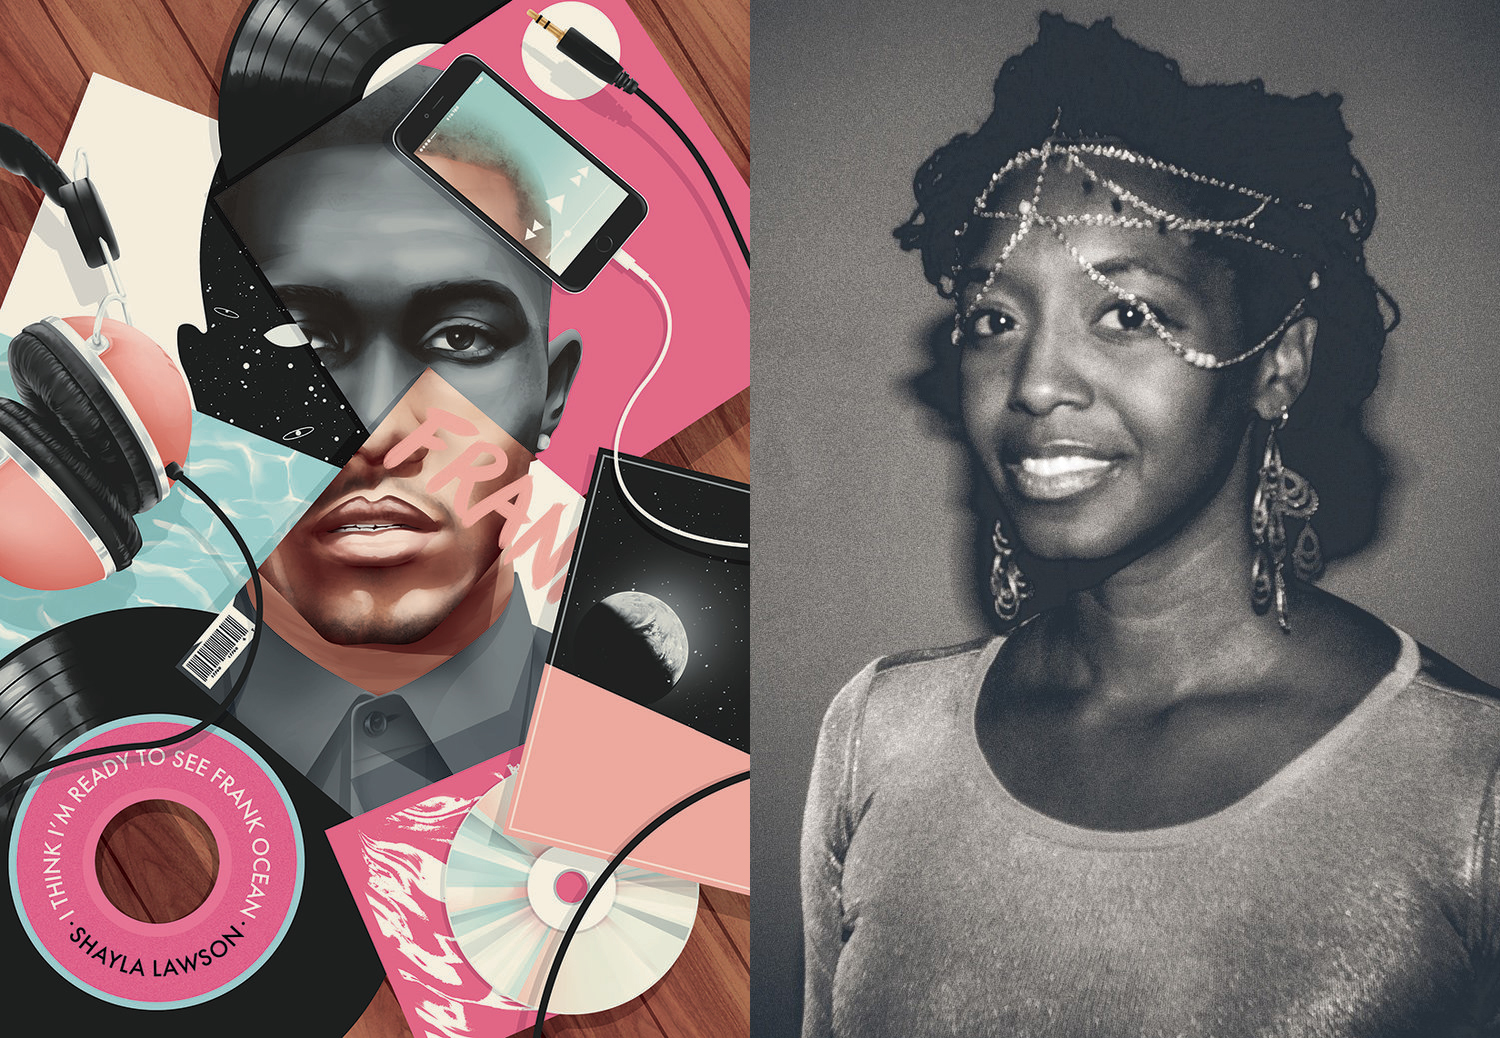 Shayla Lawson book cover and portrait